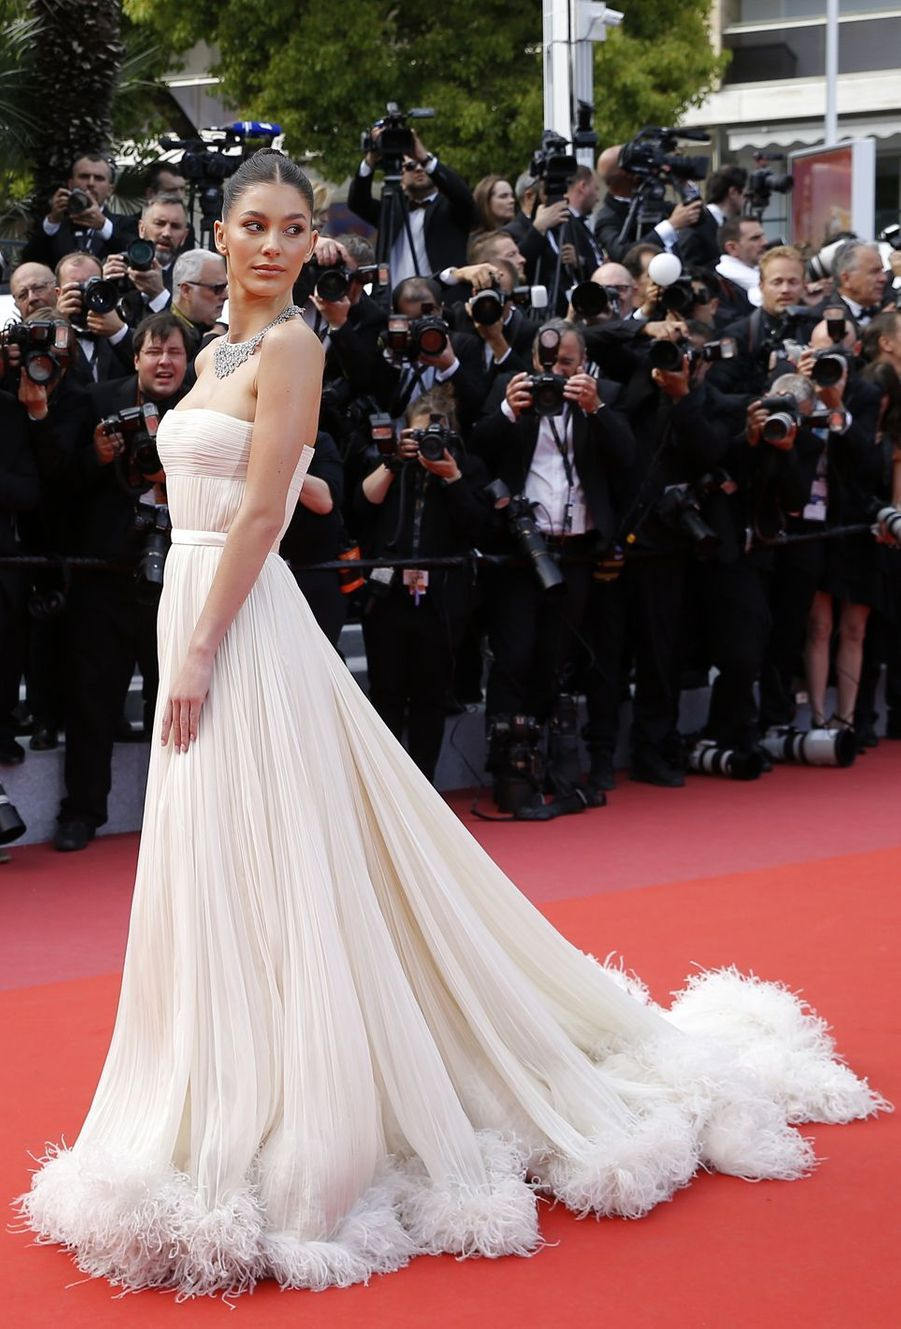 Camila Morrone lors de la montée des marches du film «Once Upon A Time In Hollywood» à Cannes le 21 mai 2019